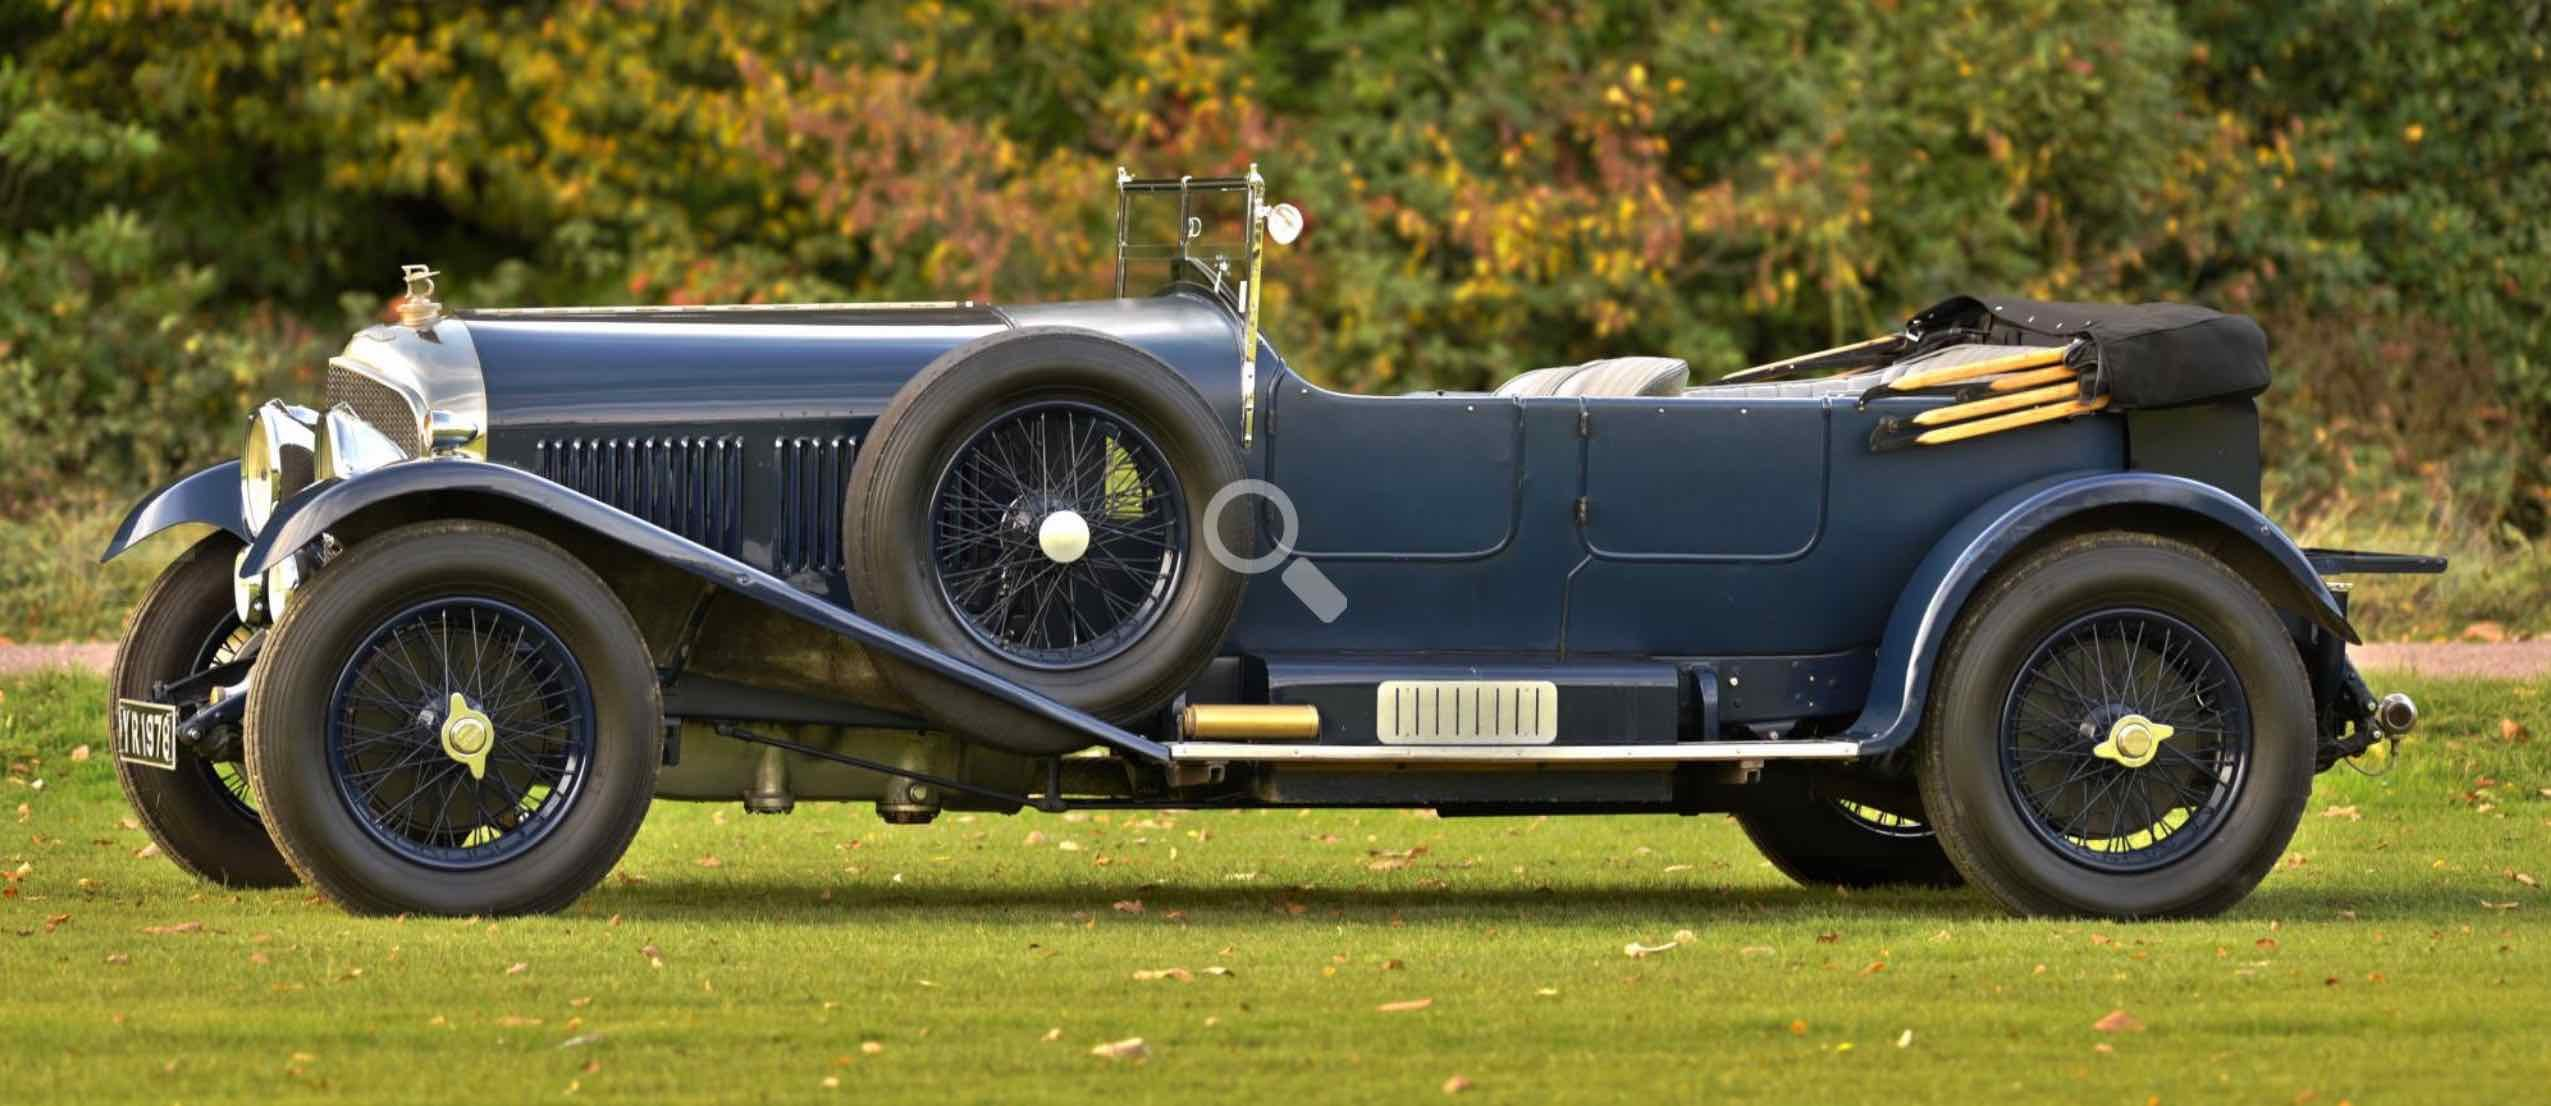 1926 Bentley 6 1/2 Litre Tourer. For Sale (picture 4 of 12)